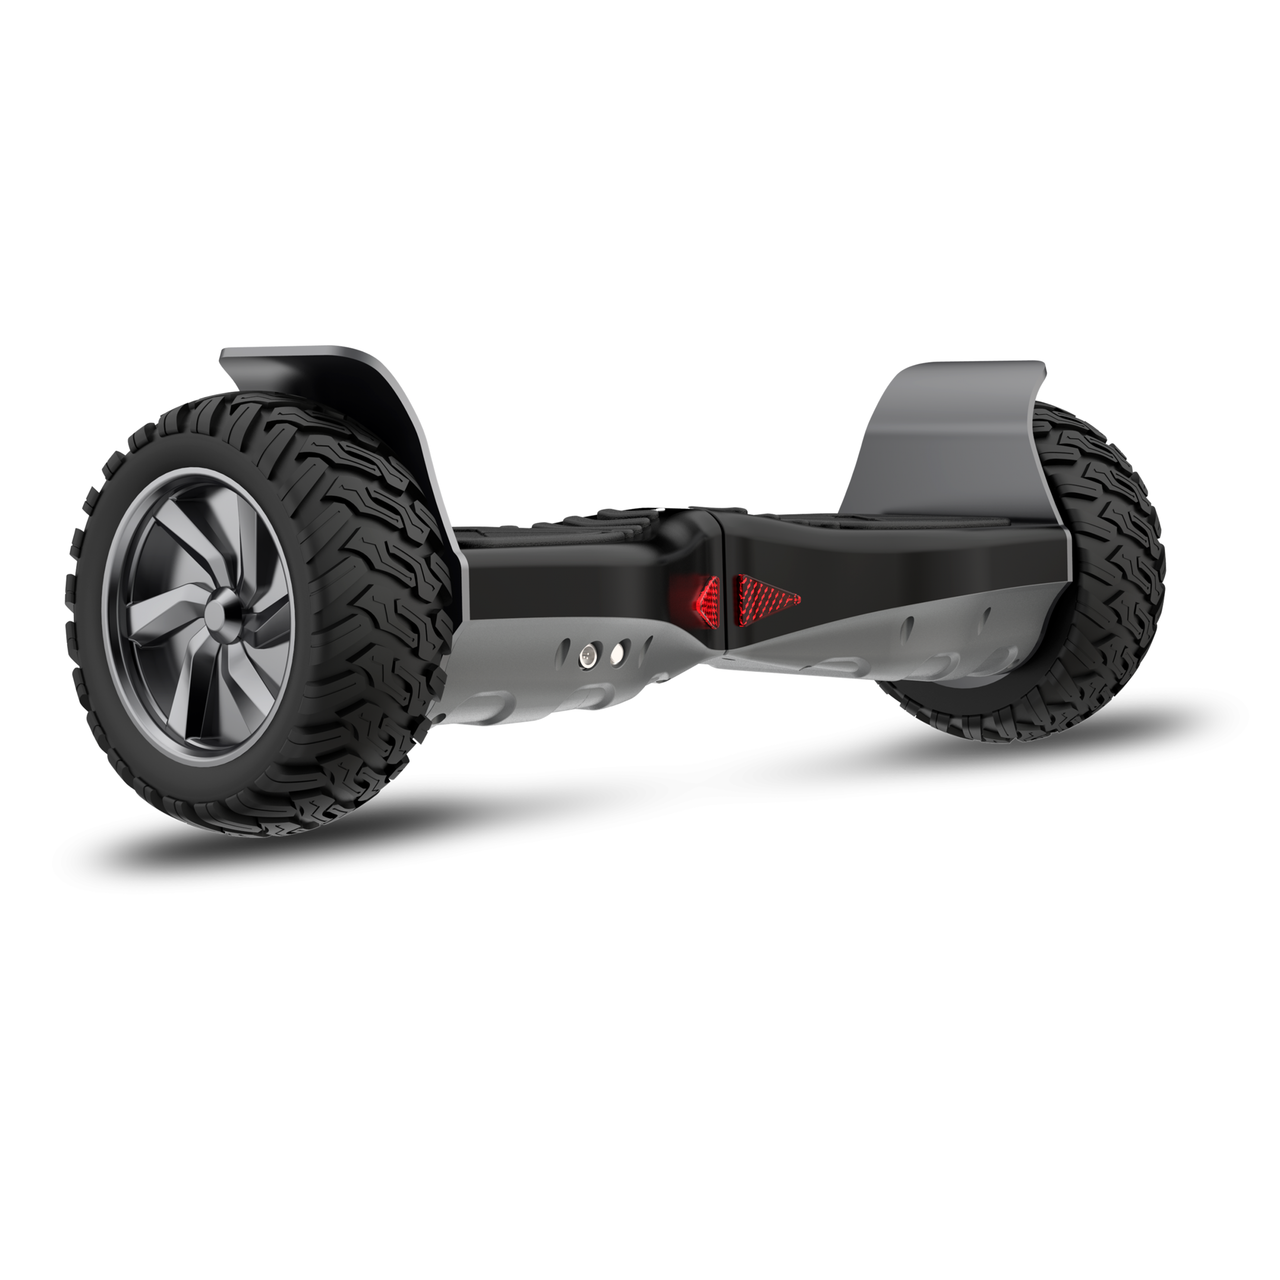 Cheapest Lamborghini For Sale Used: Kiwano KO-X All Terrain Scooter At Discounted Prices For